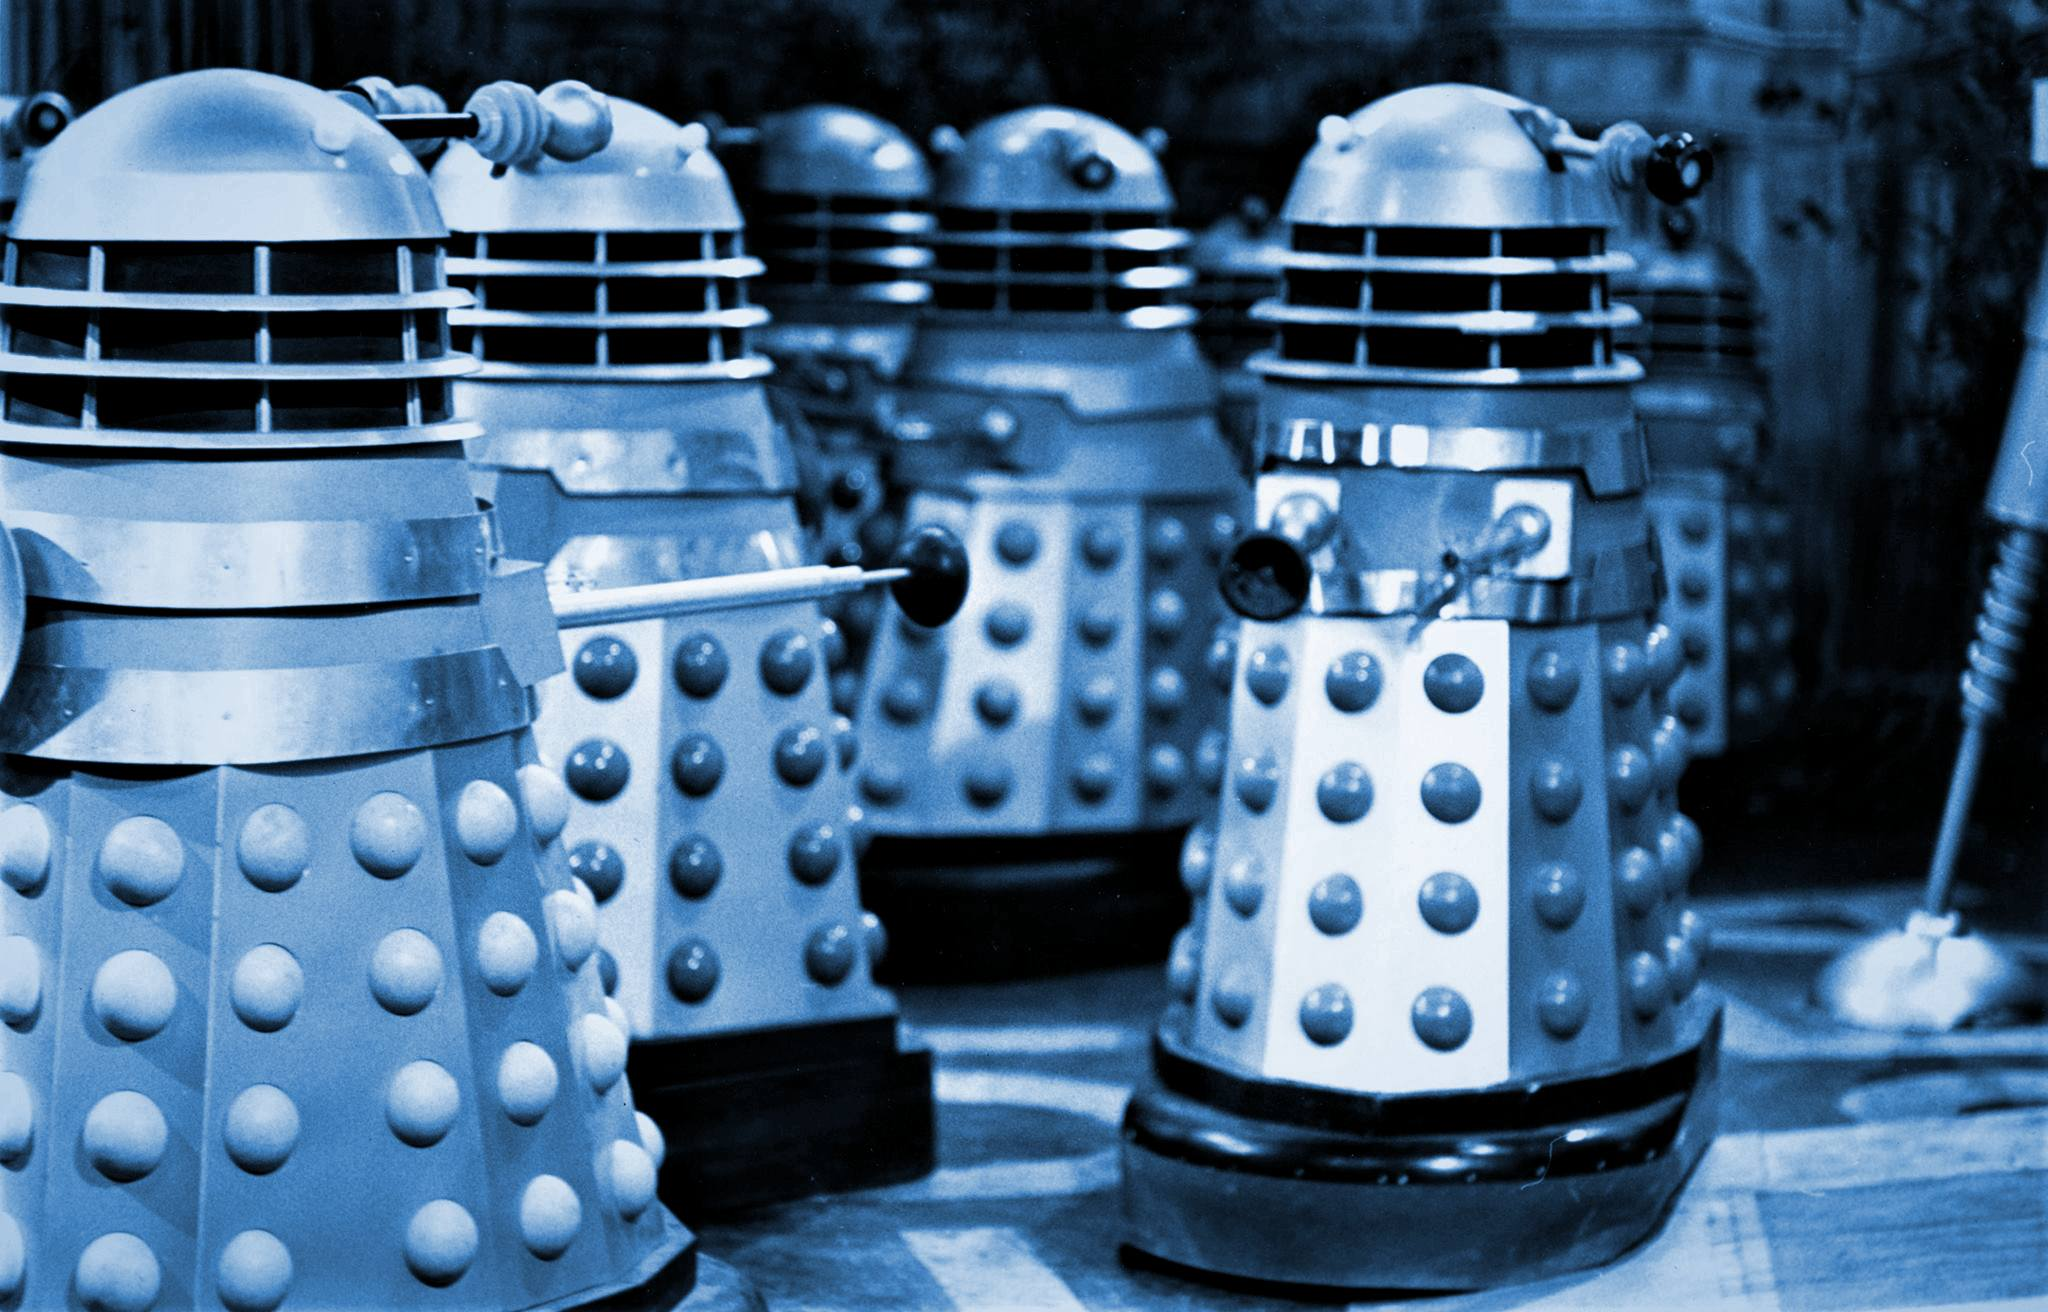 The all-Dalek production of *A Chorus Line* was a box office failure, but gained plaudits from critics for 'sheer audacity'.